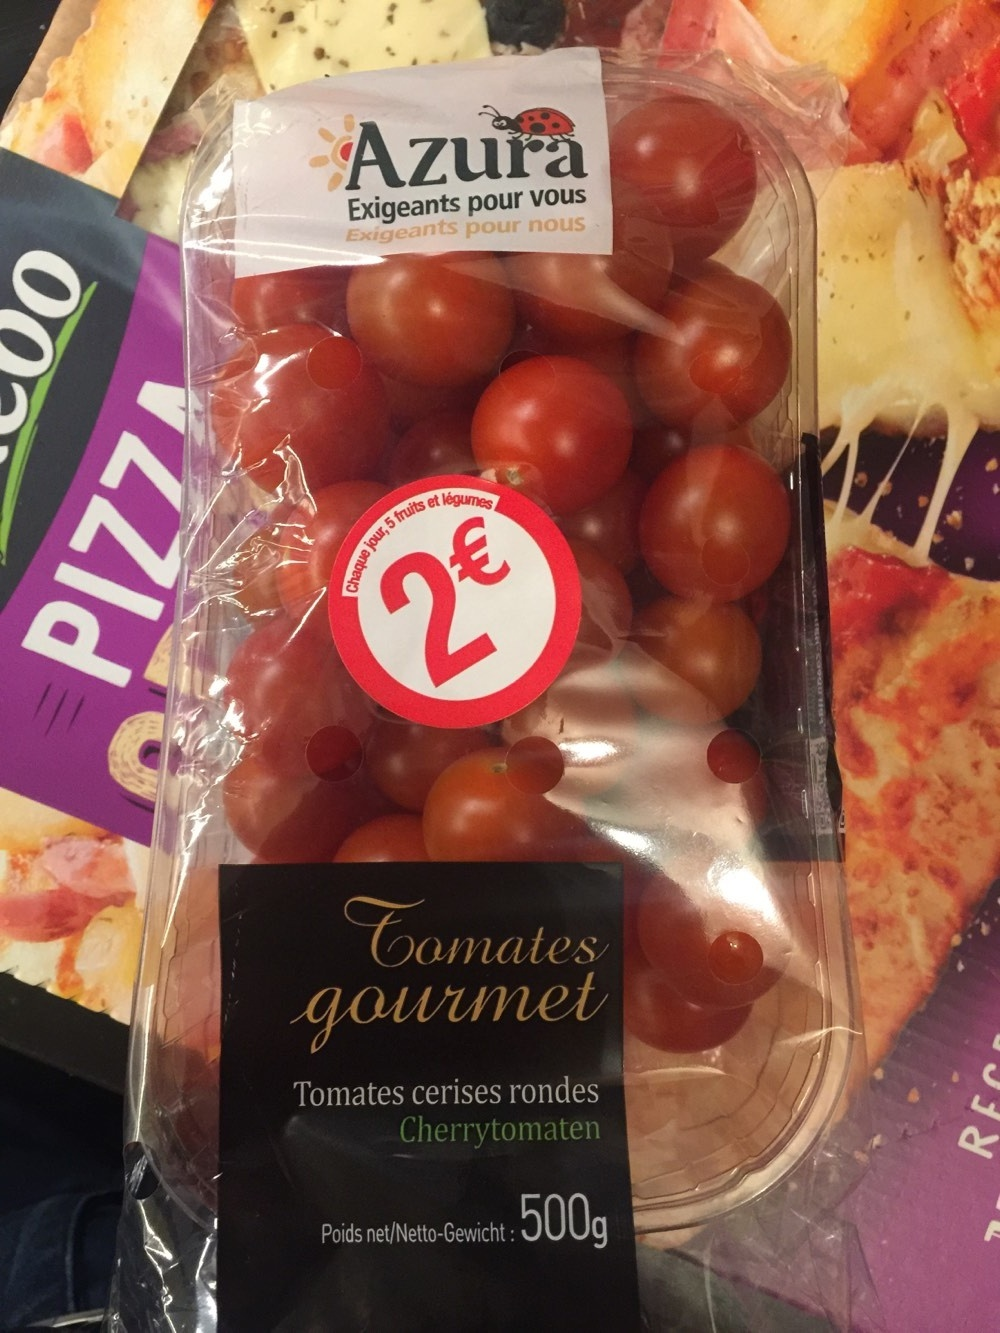 Tomates gourmet - Product - fr